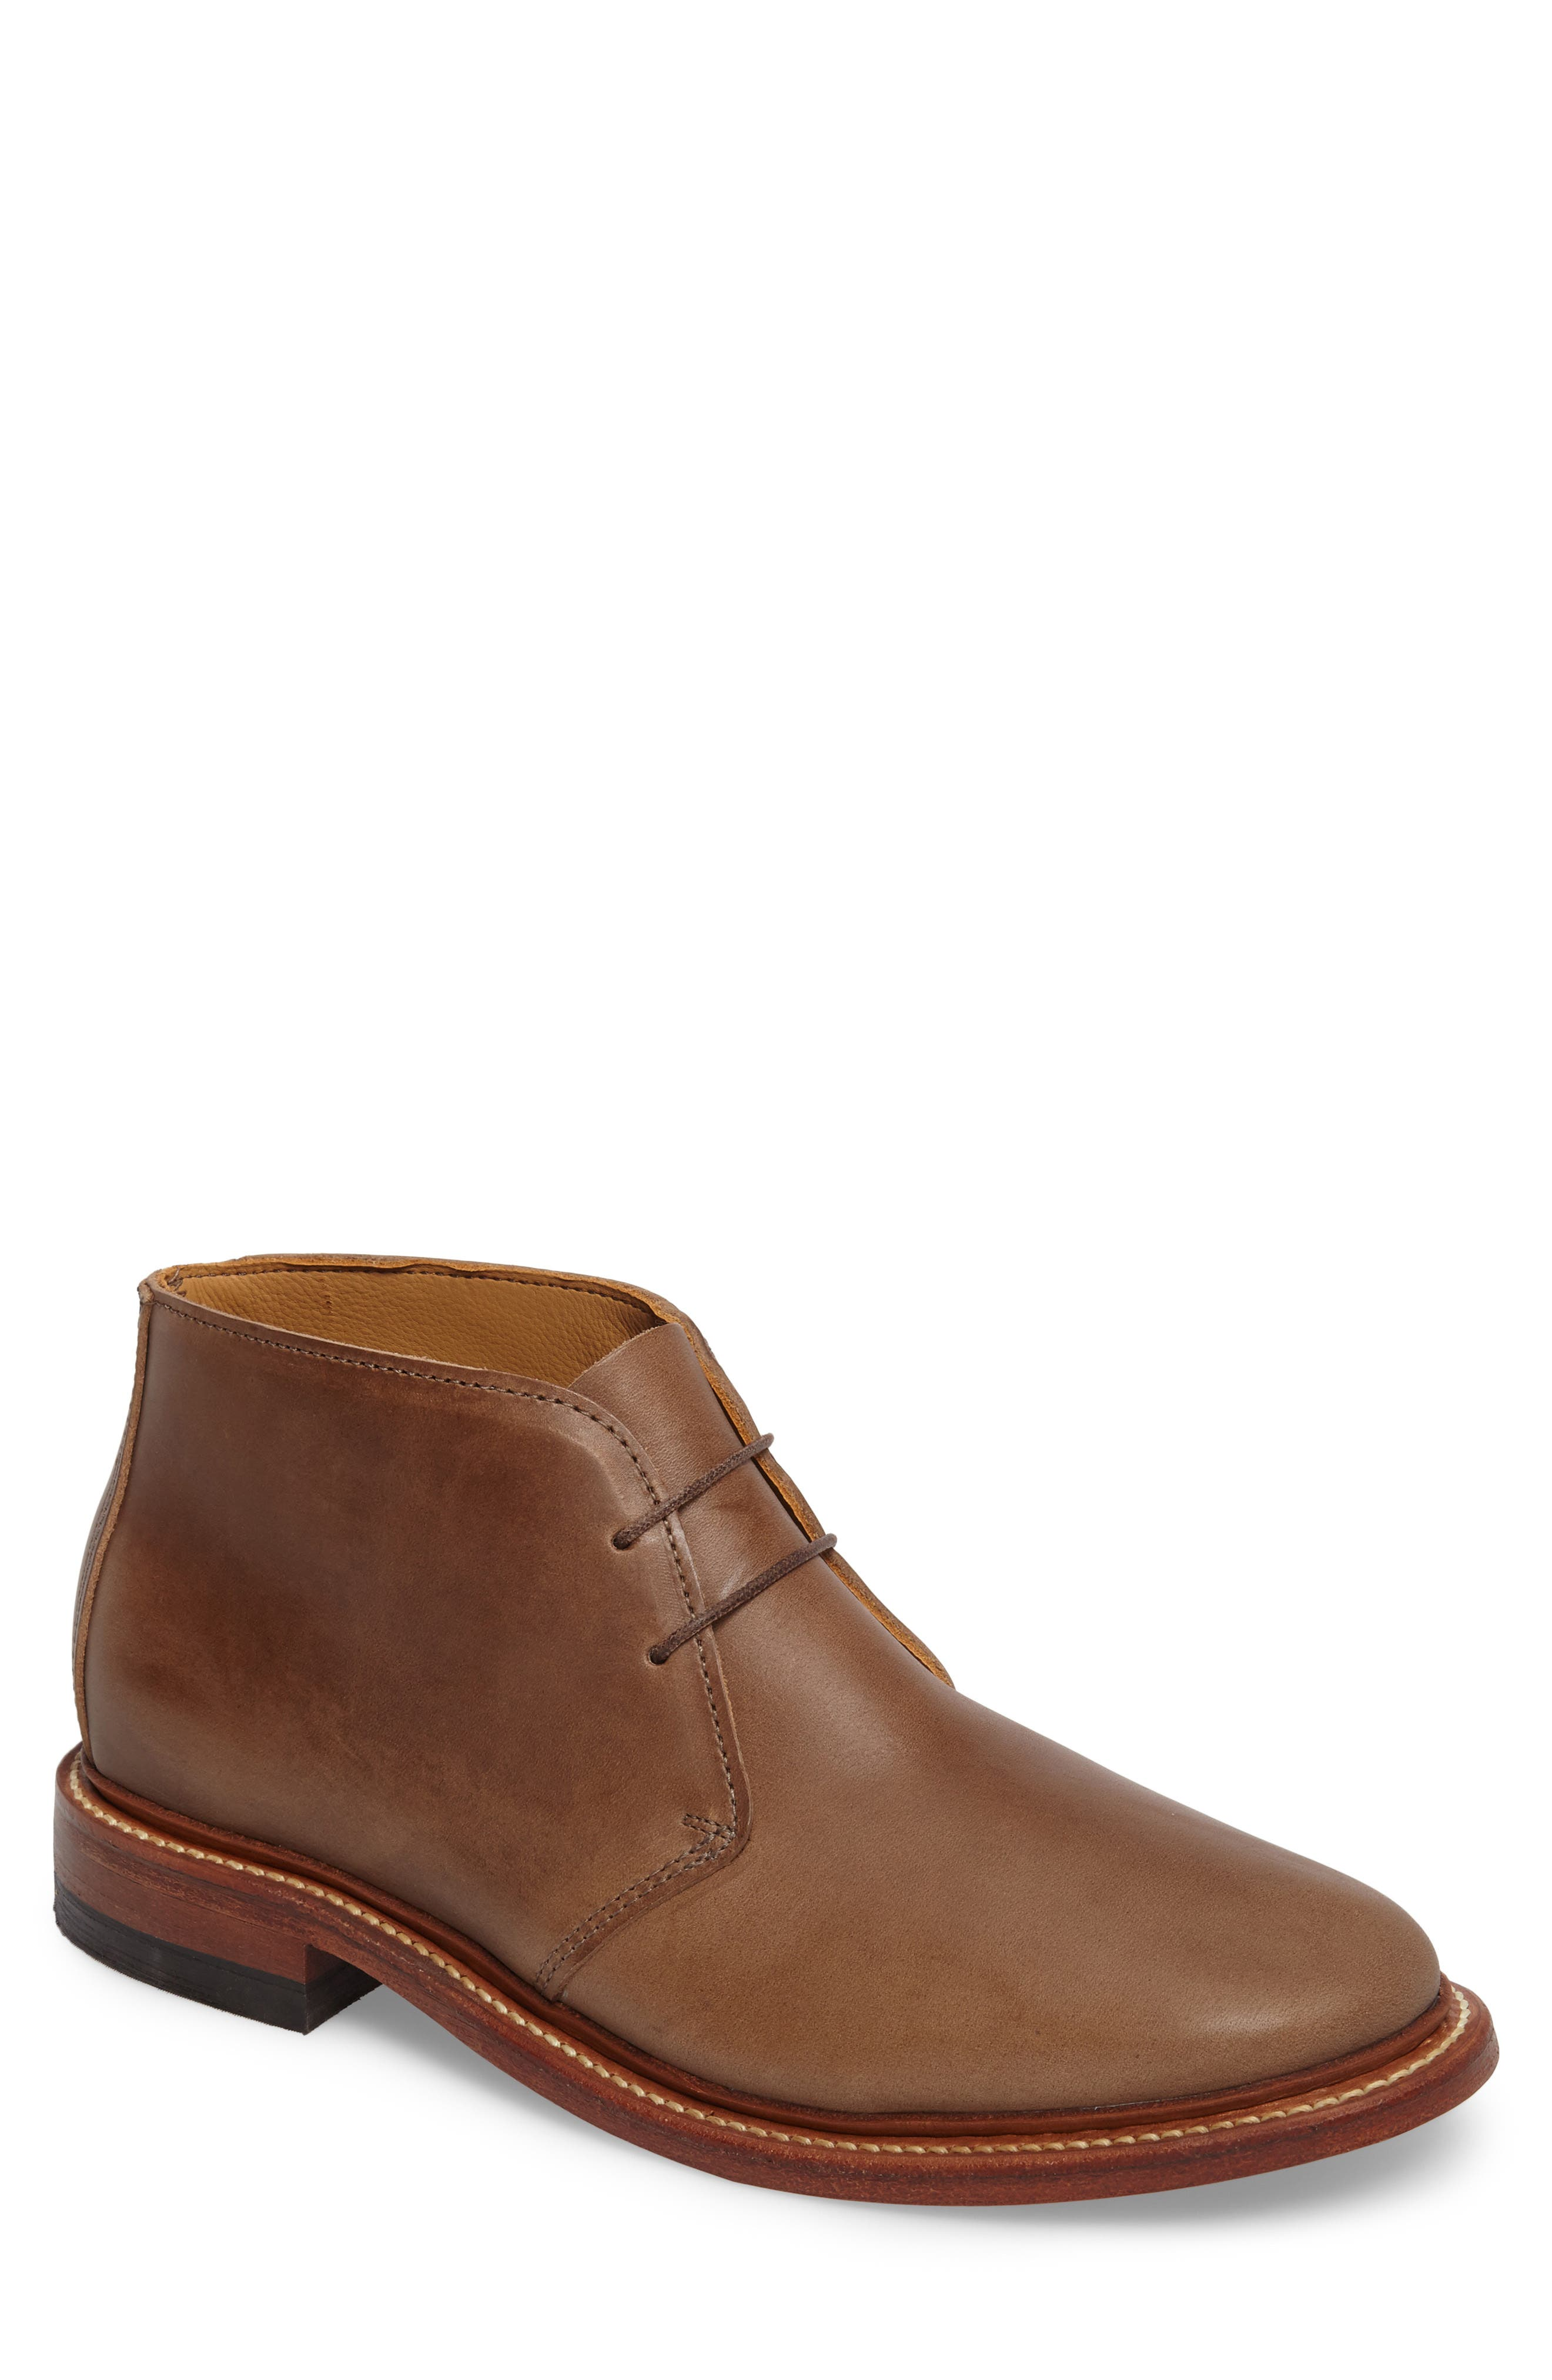 Campus Chukka Boot,                         Main,                         color, Natural Leather